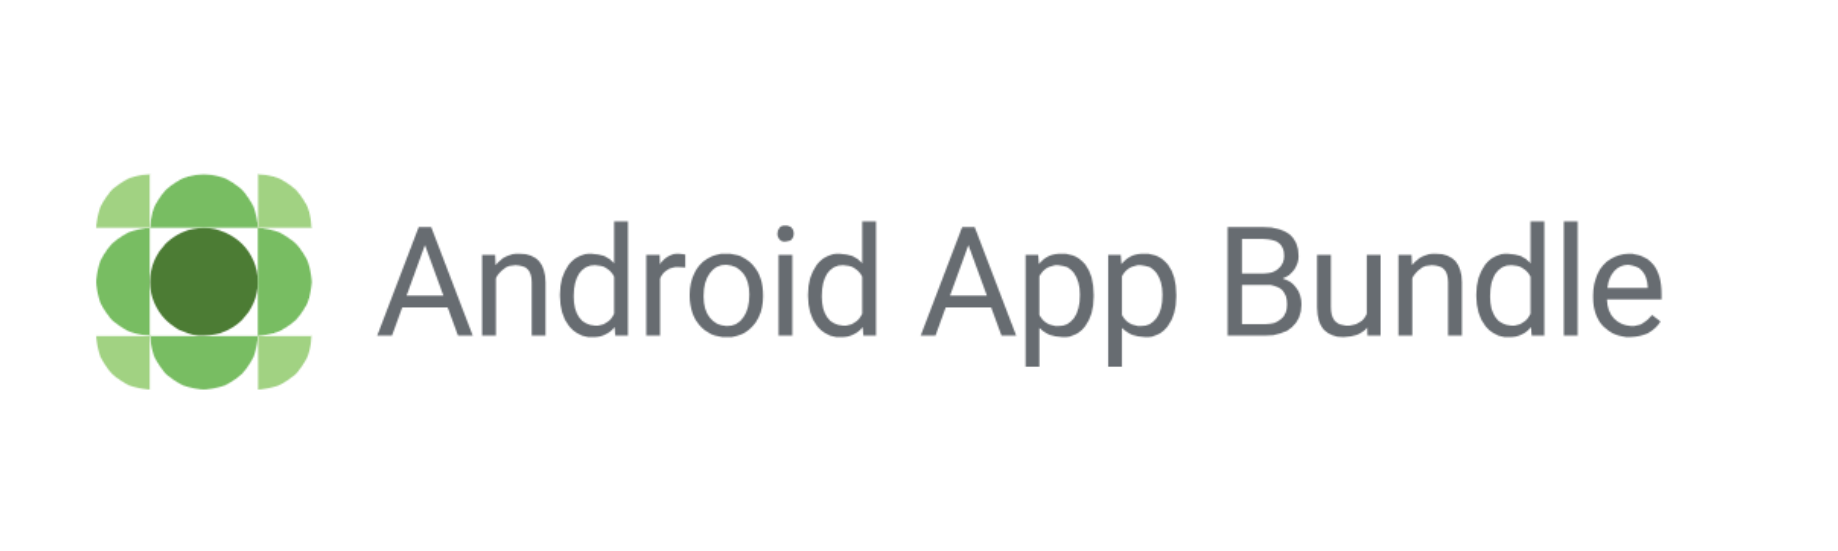 Android App Bundle - MindOrks - Medium